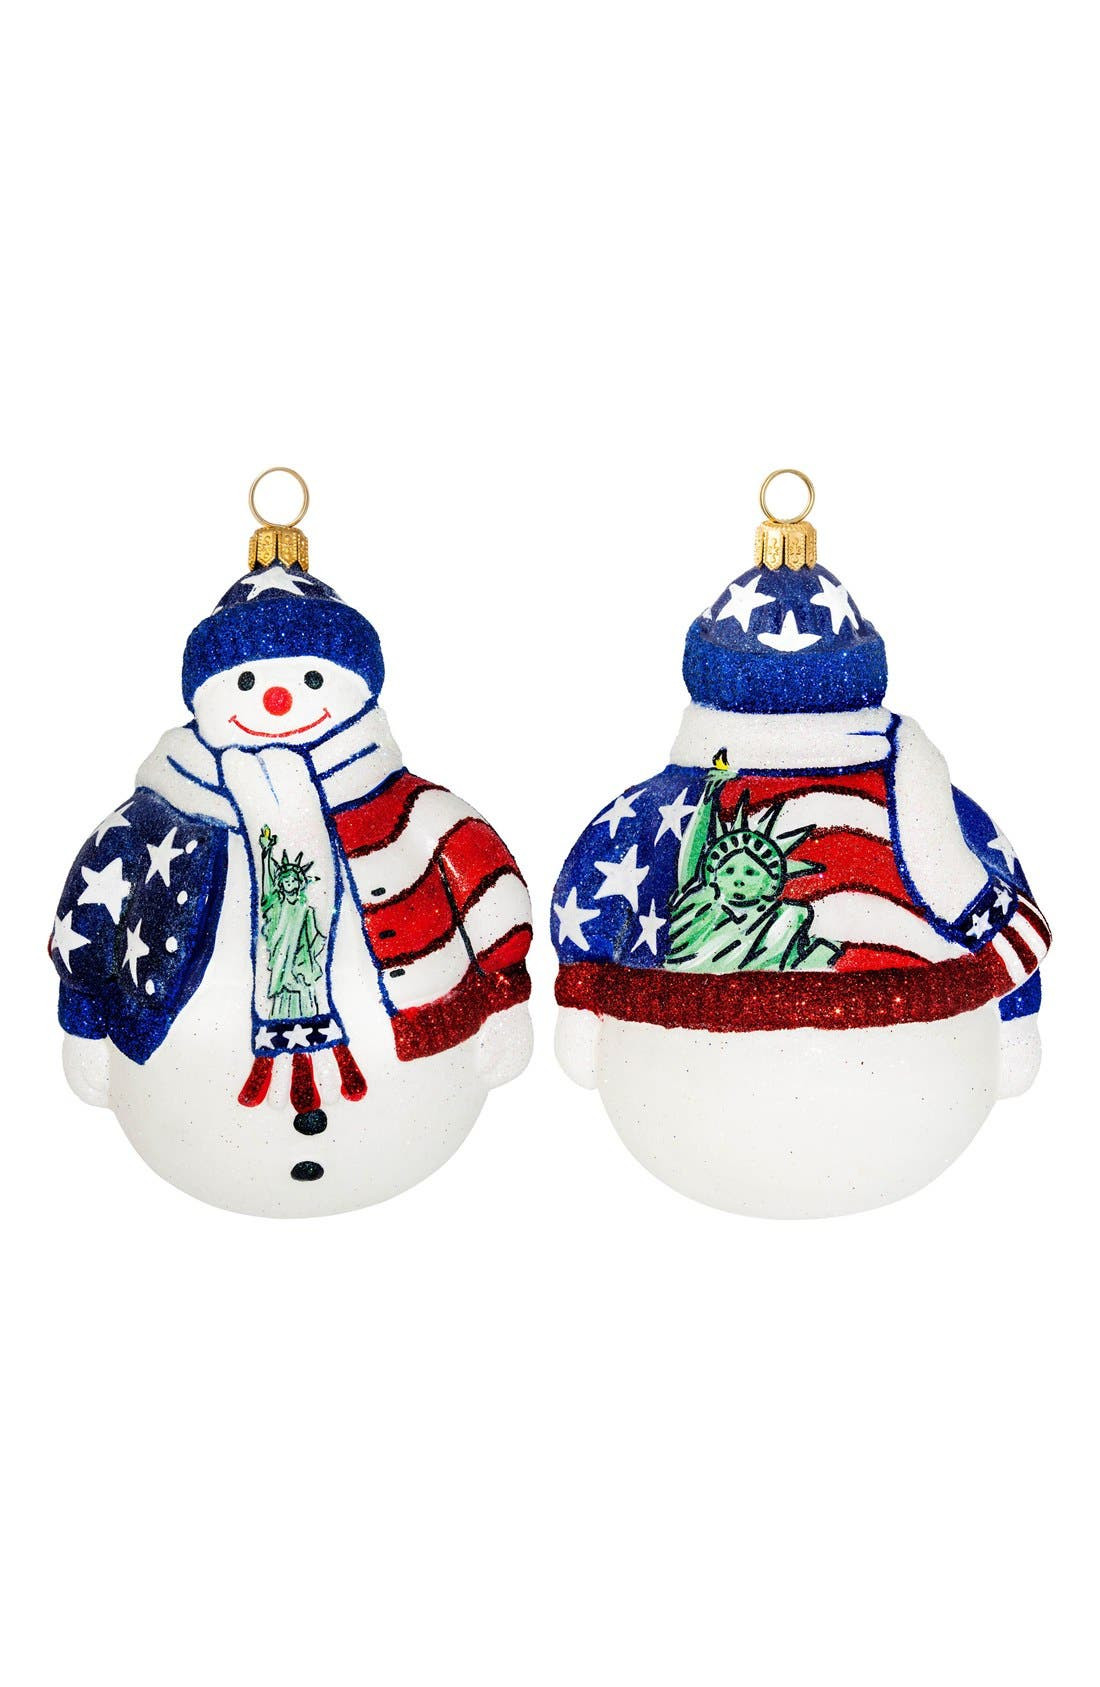 'Land of the Free' Snowman Ornament,                             Main thumbnail 1, color,